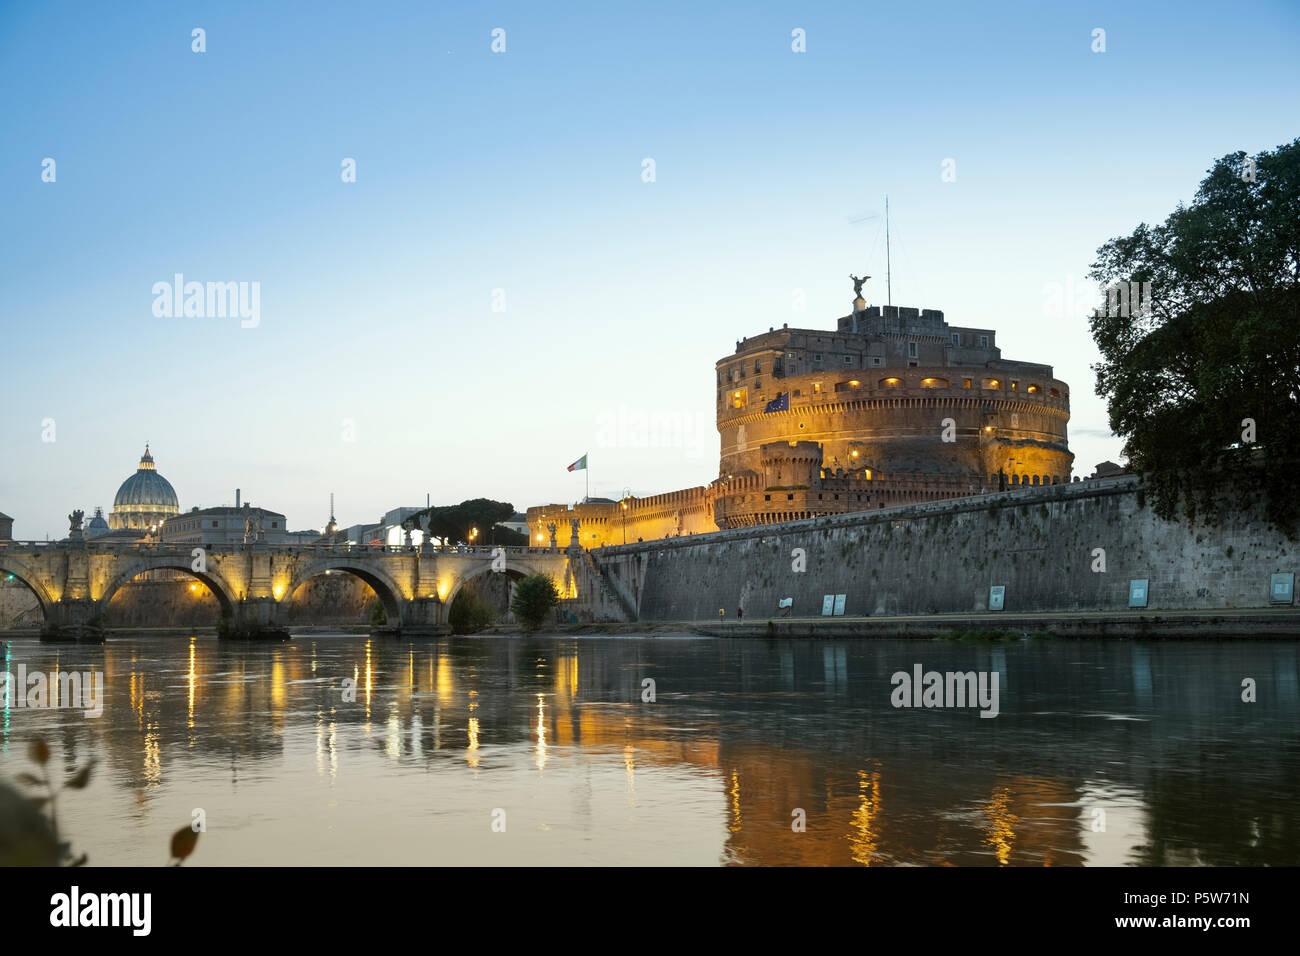 Mausoleum of Hadrian or Castel Sant'Angelo and the St. Angelo bridge built by the Emperor Hadrian in Rome - Stock Image